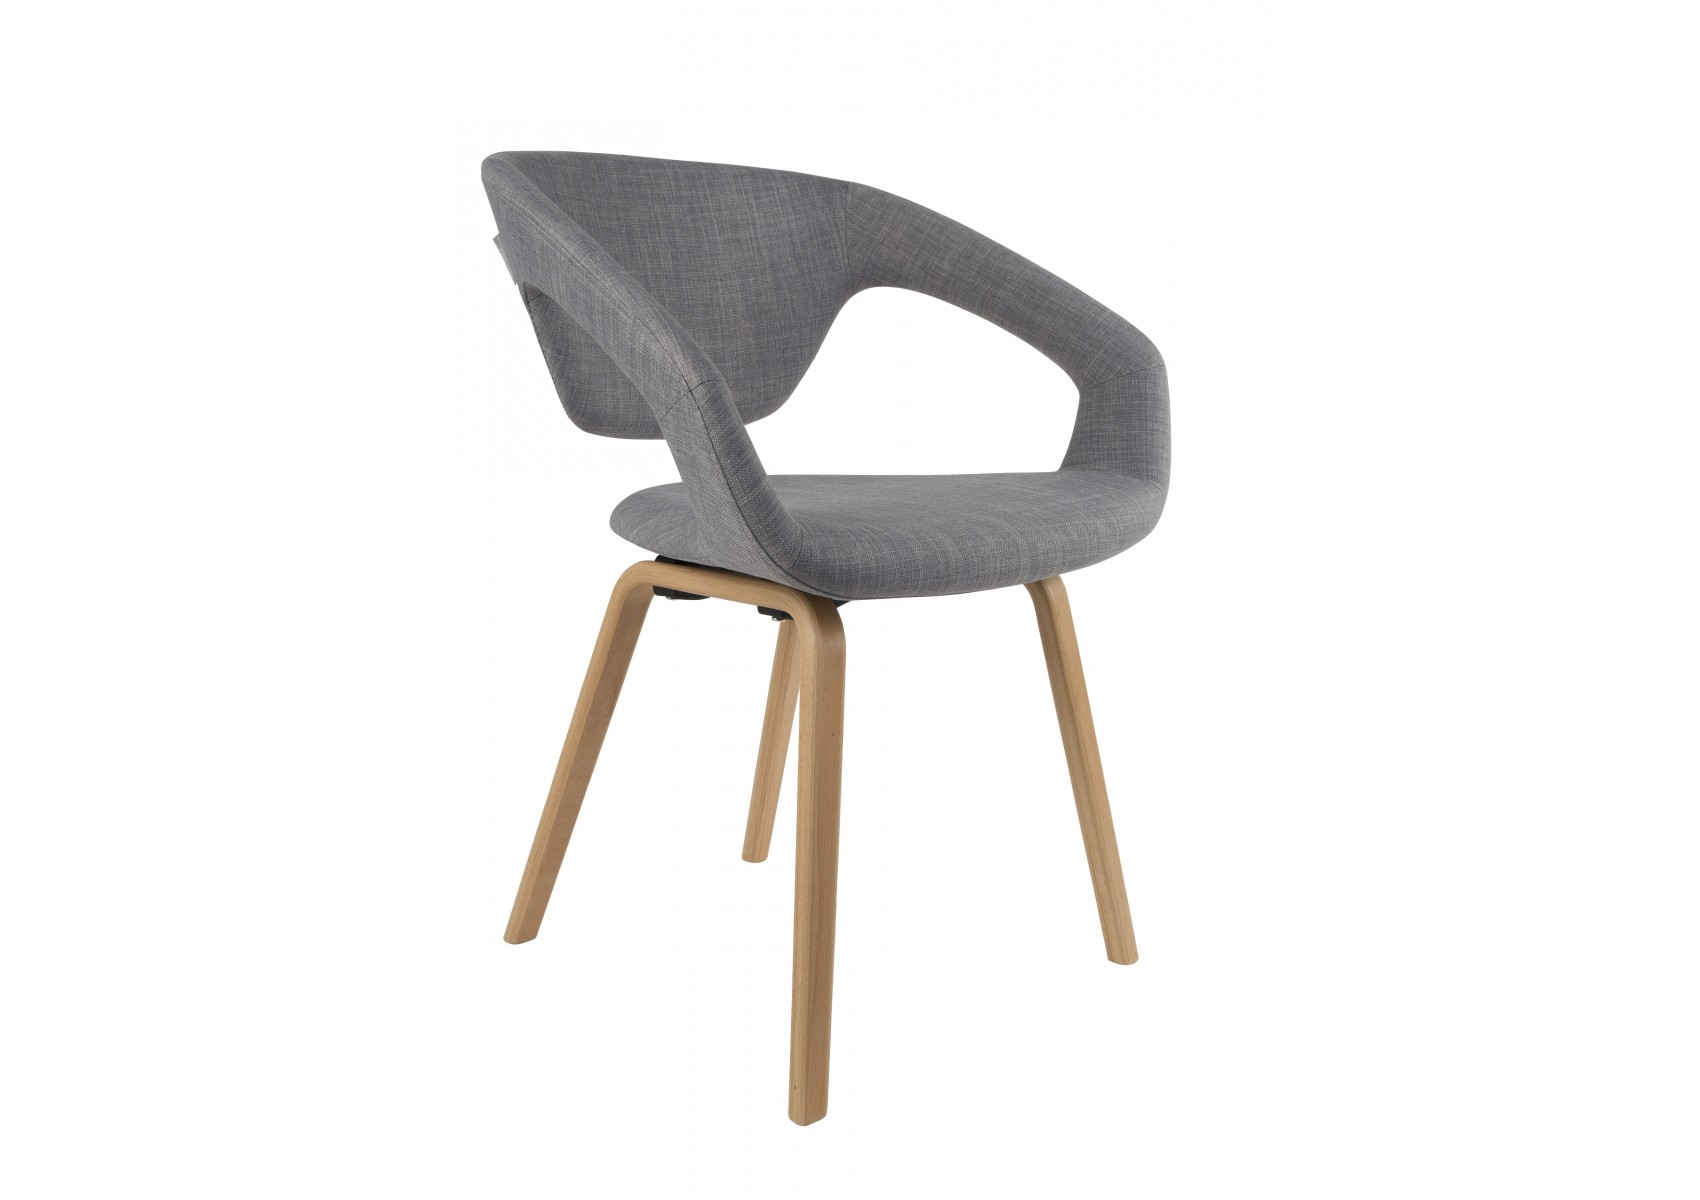 Chaise design flex back par zuiver boite design for Chaise 3 pieds